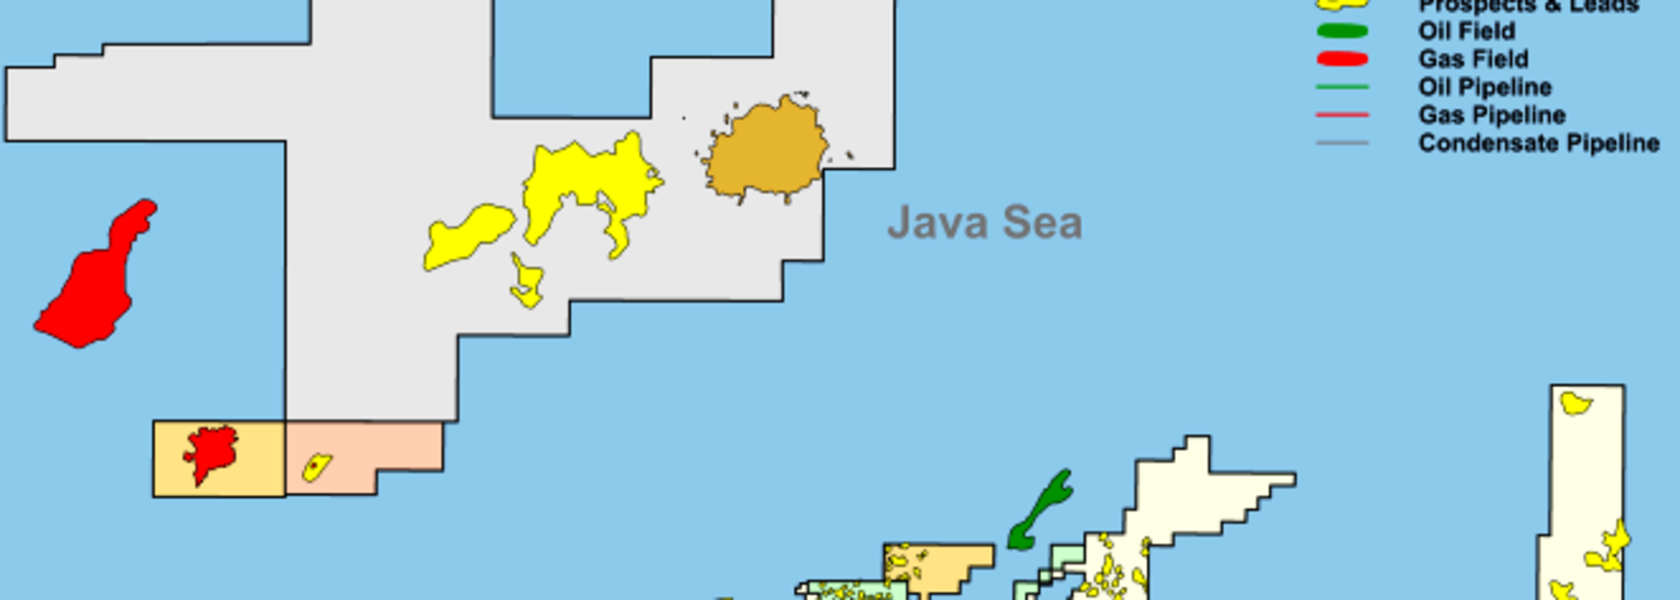 Indonesian nod for gas project sale.